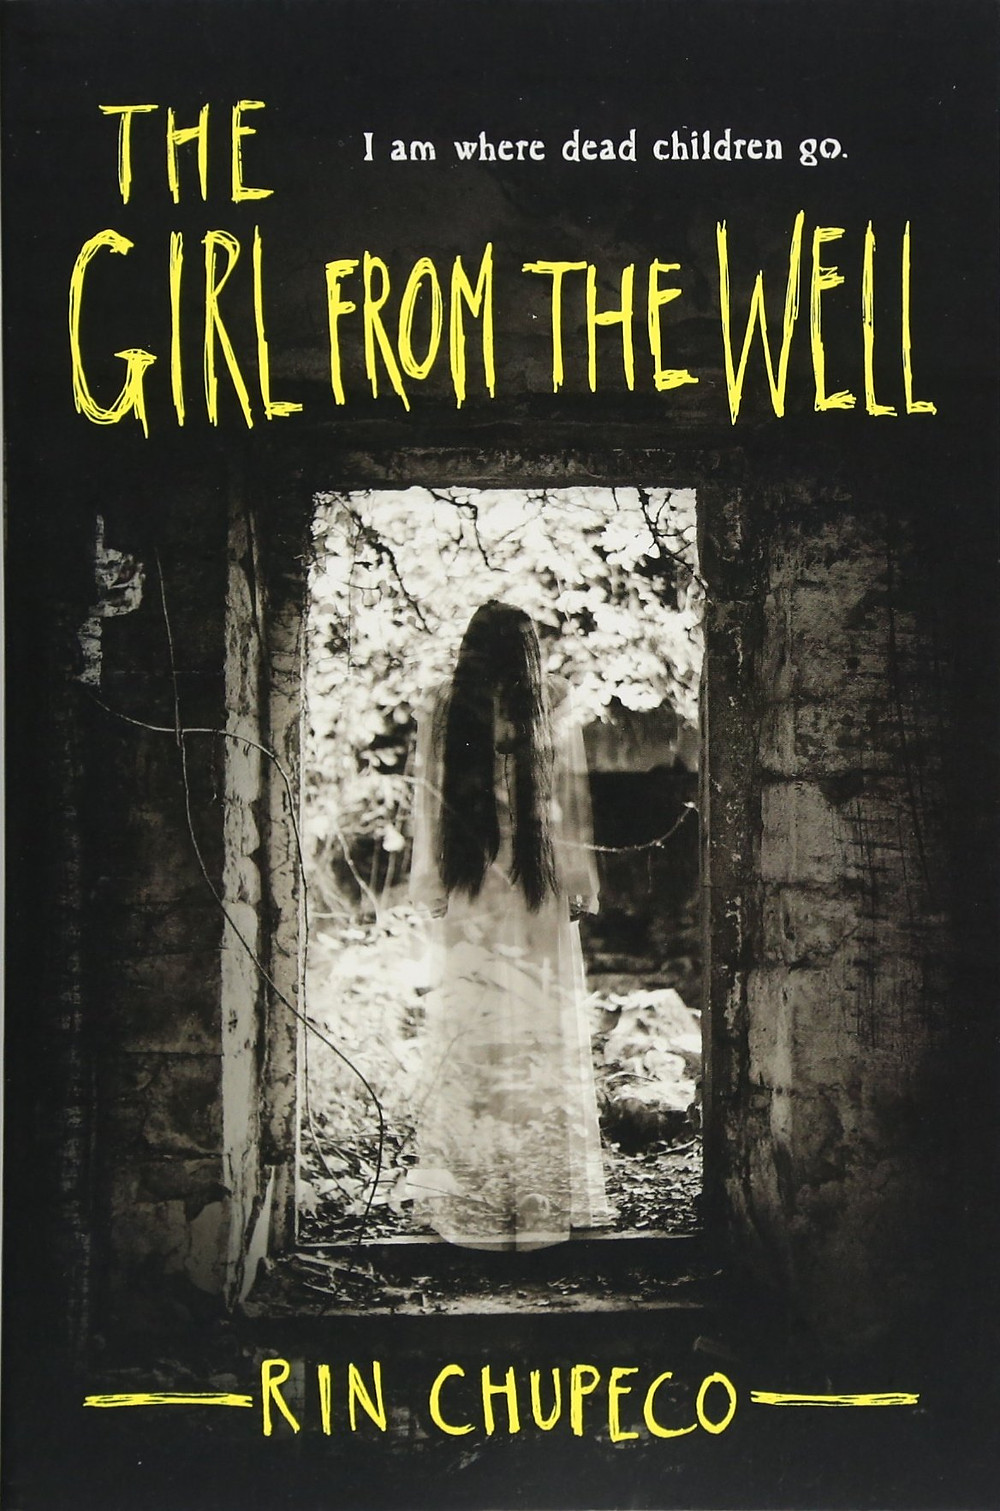 Book cover of The Girl From the Well by Rin Chupeco.